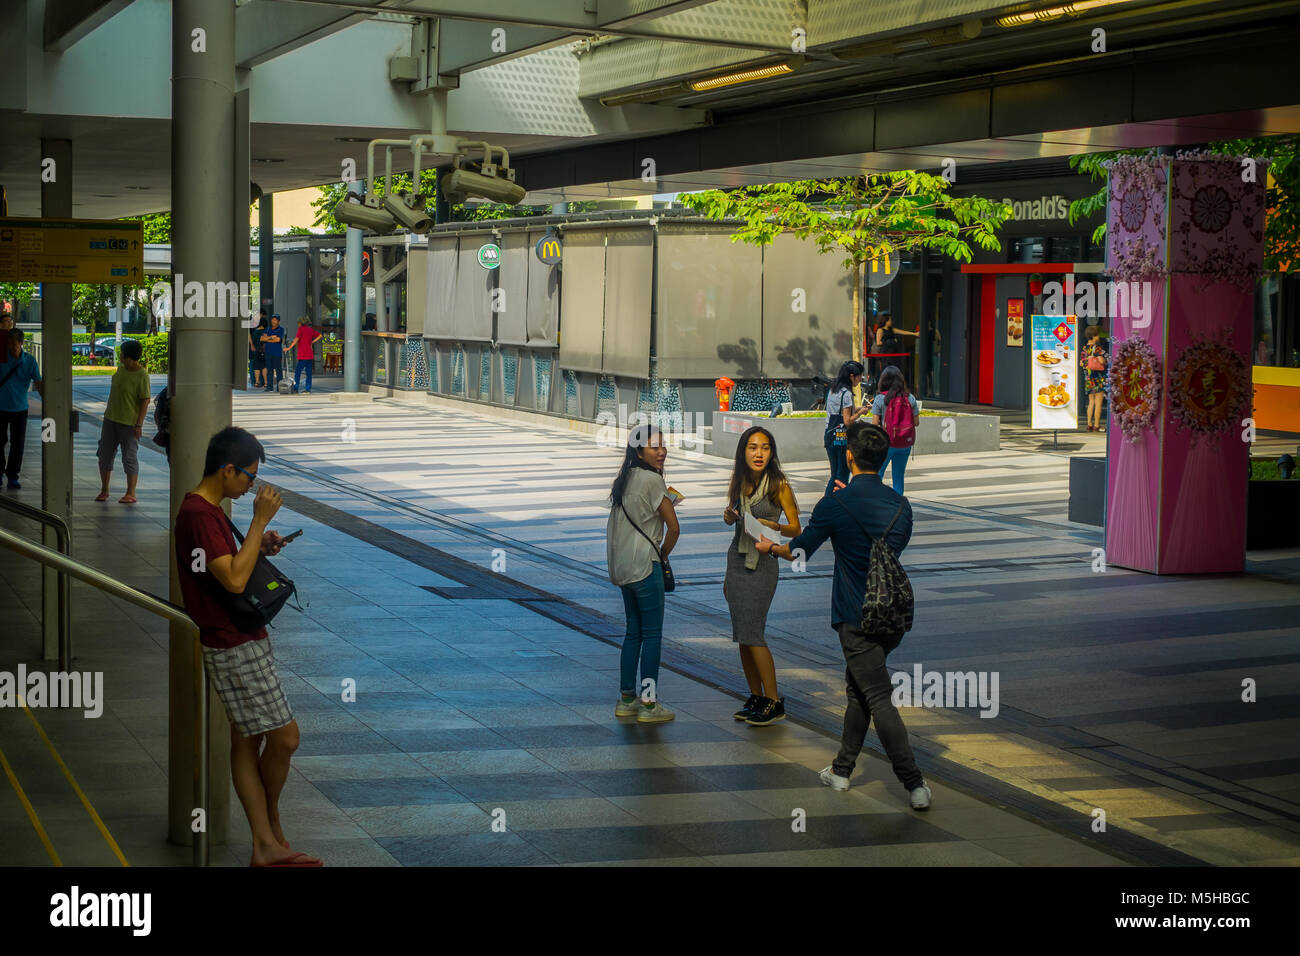 SINGAPORE, SINGAPORE - JANUARY 30, 2018: Outdoor view of unidentified people walking in the sidewalks close to at Stock Photo